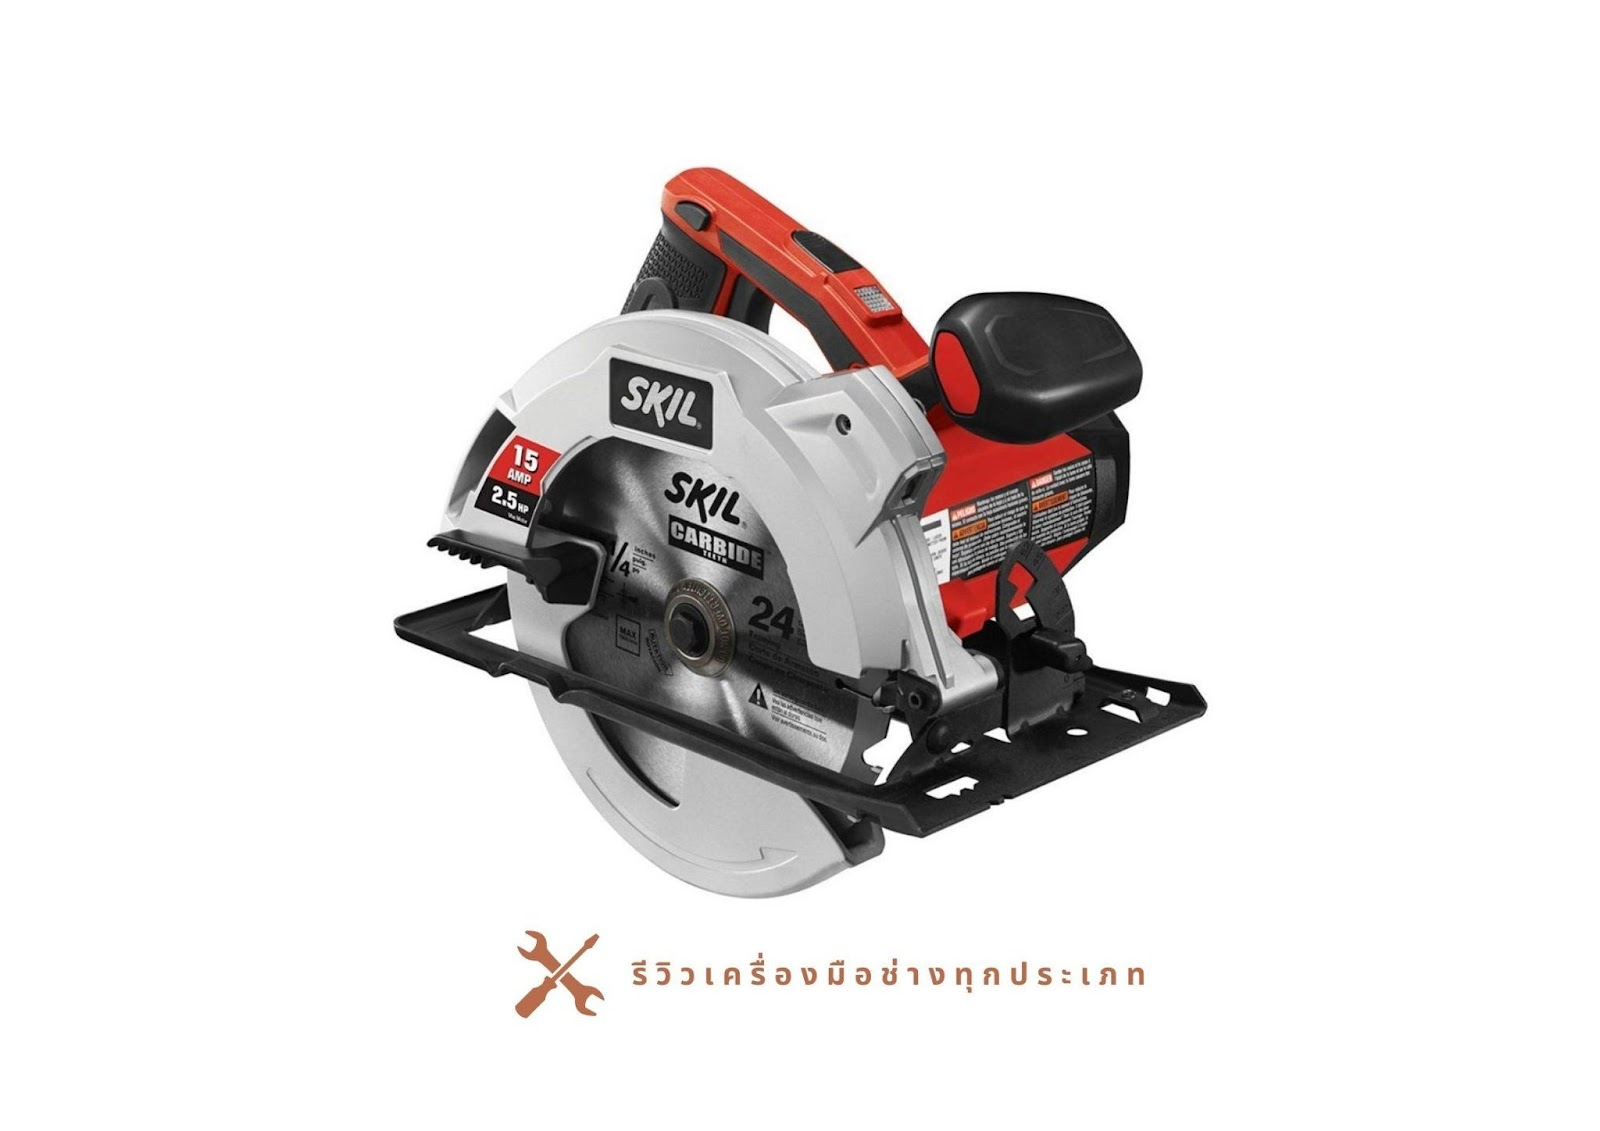 6. SKILSAW 5280-01 Circular Saw With Laser Guide